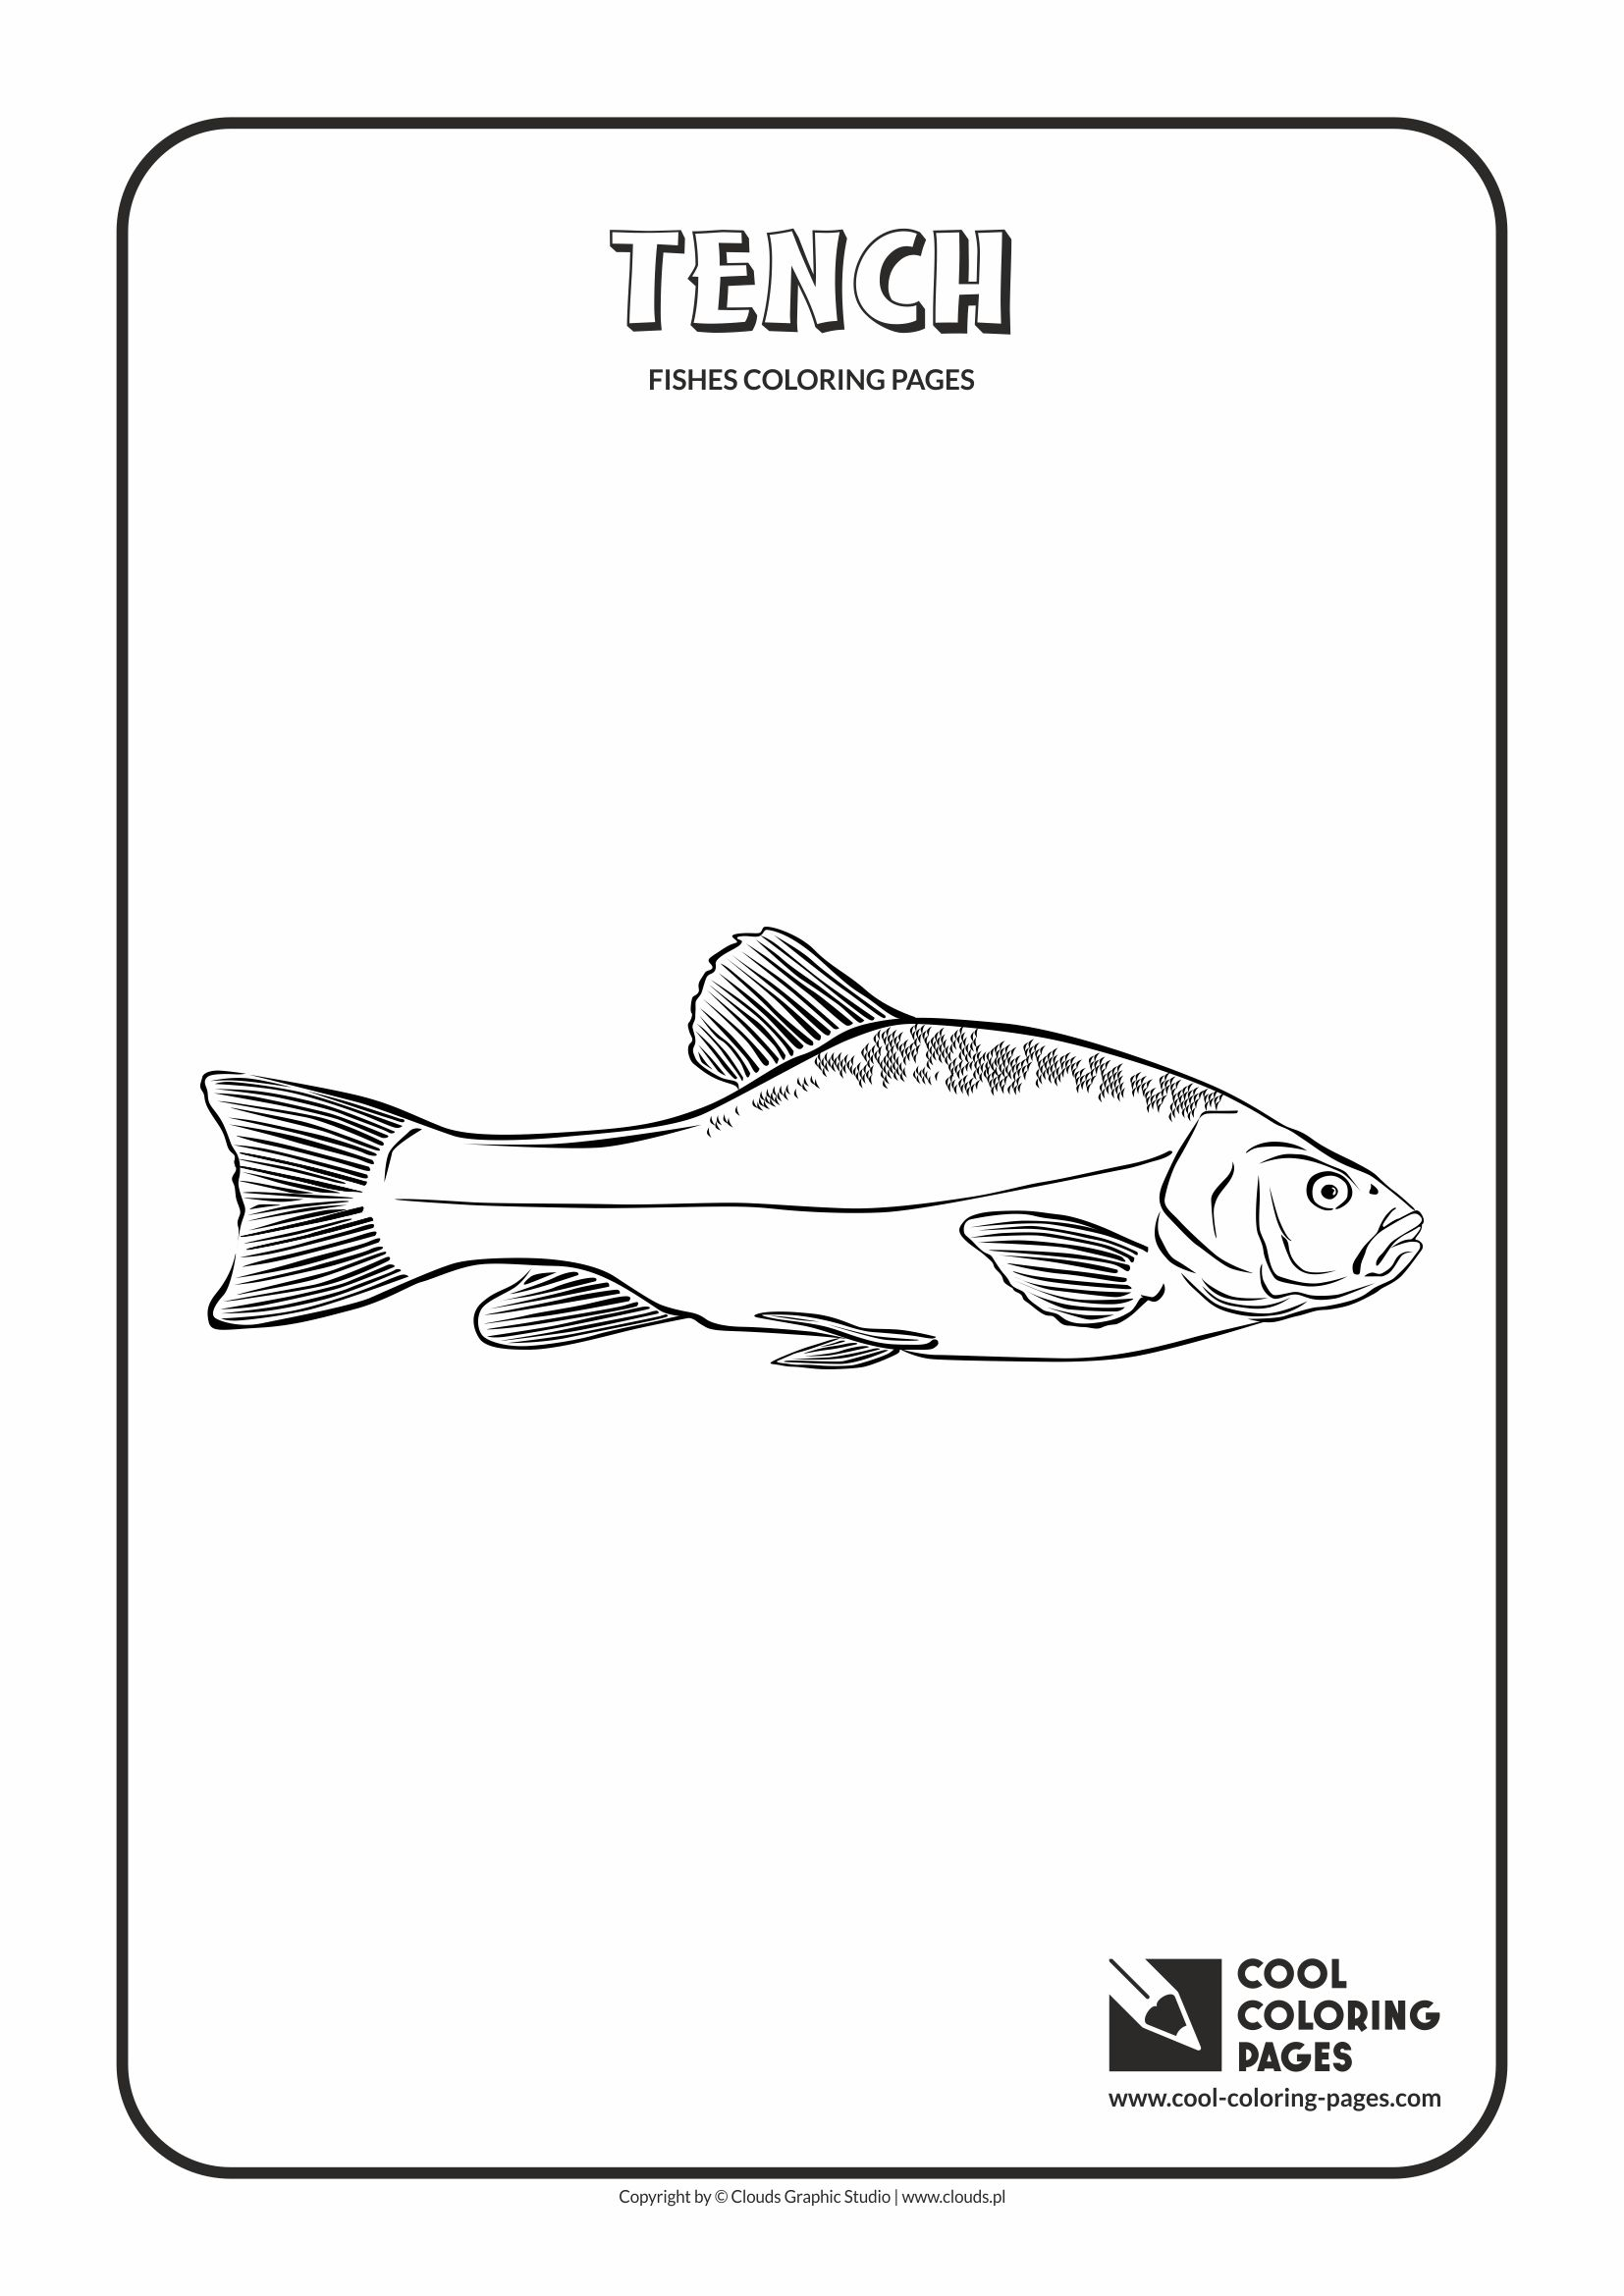 Cool Coloring Pages - Animals / Tench / Coloring page with tench